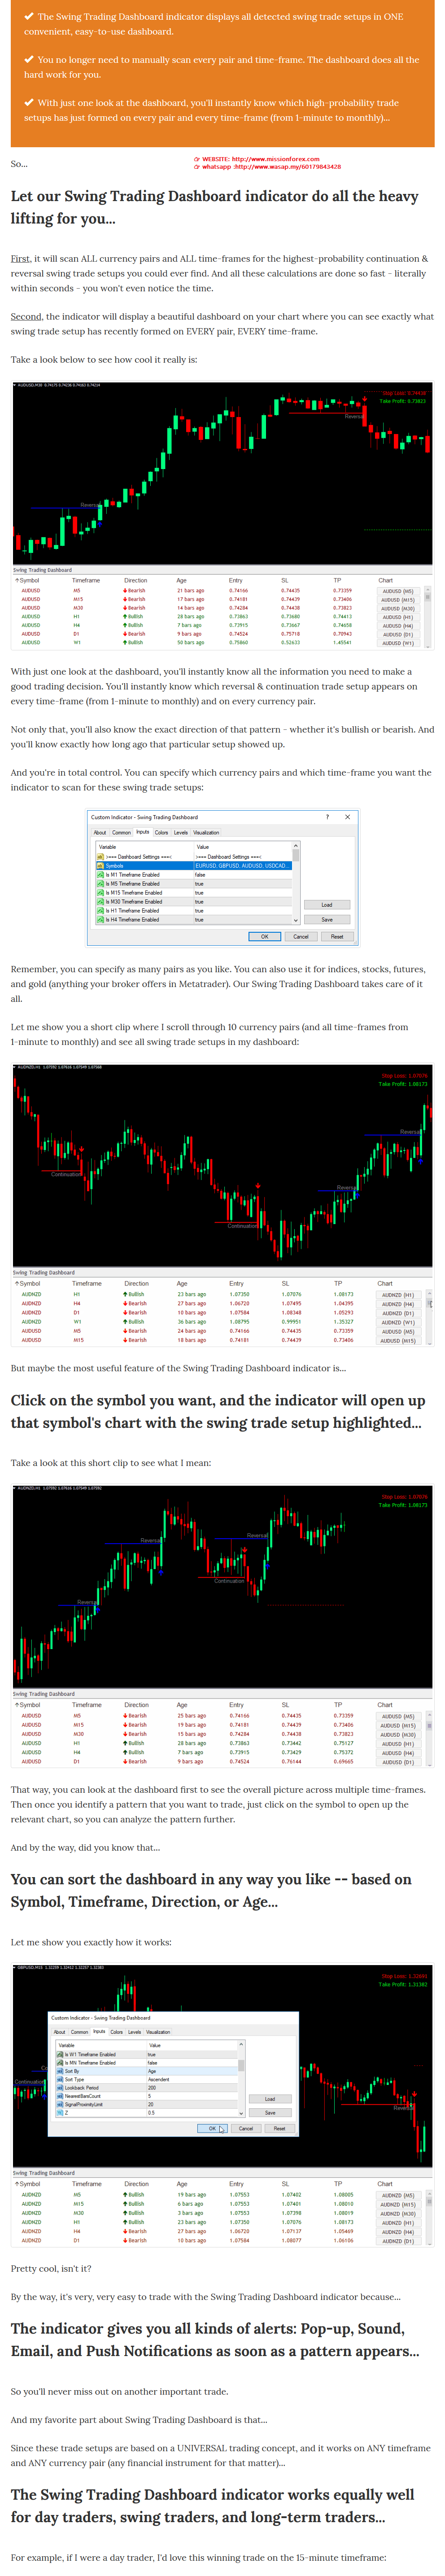 Swing Trading Dashboard forex Indicator get the Highest-Probability Swing Trade Opportunities